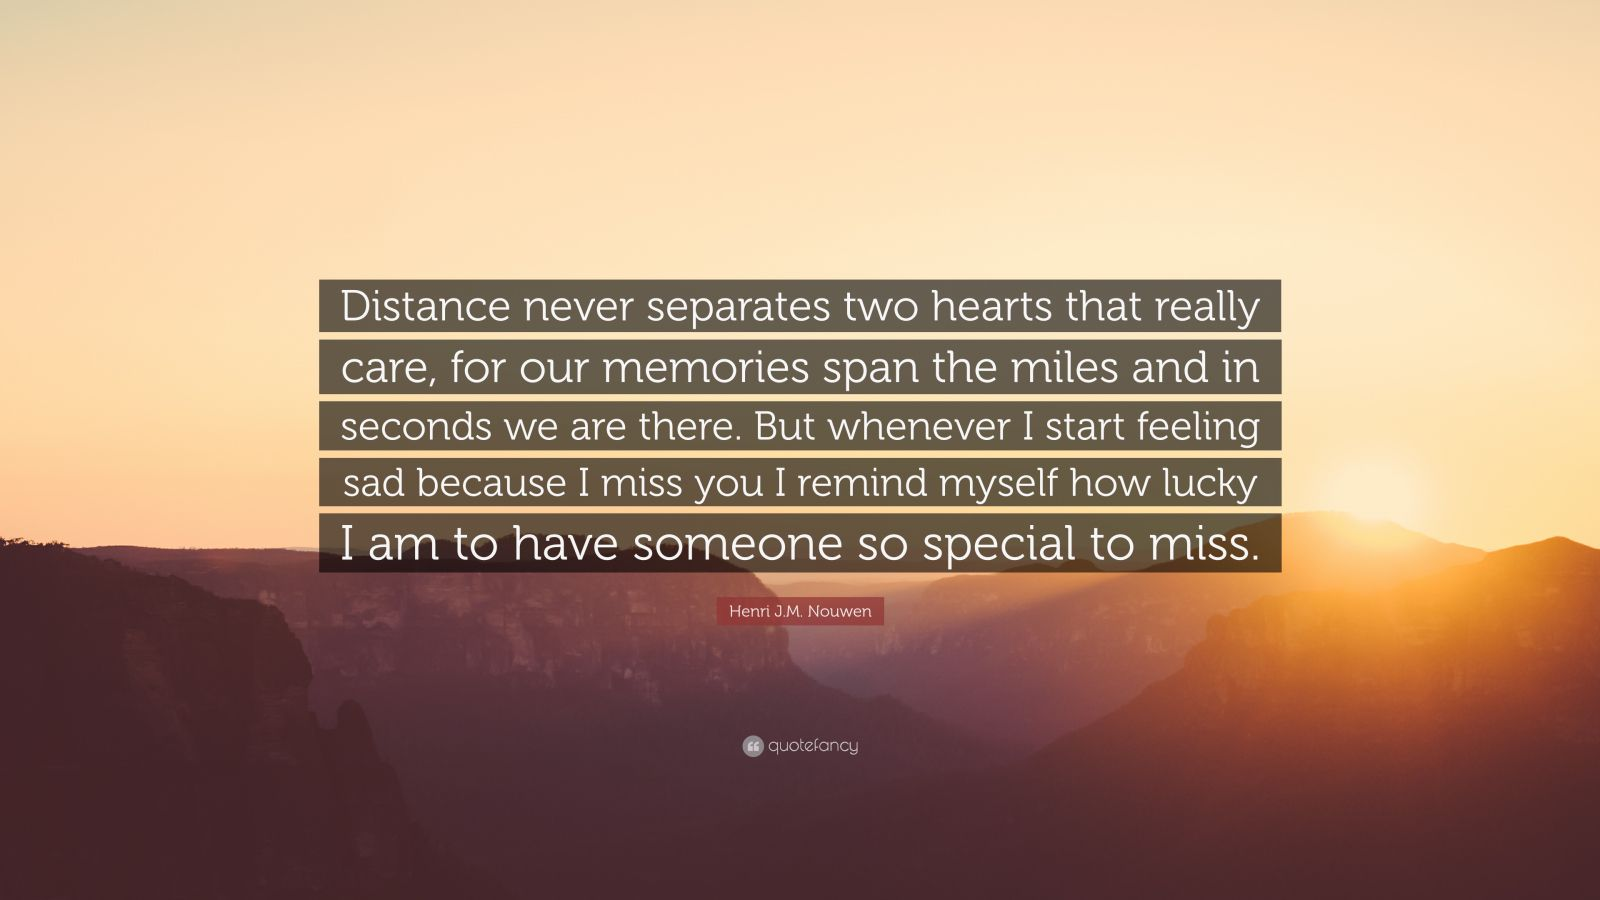 """Henri J.M. Nouwen Quote: """"Distance never separates two hearts that really care, for our memories span the miles and in seconds we are there. But whenever I start feeling sad because I miss you I remind myself how lucky I am to have someone so special to miss."""""""